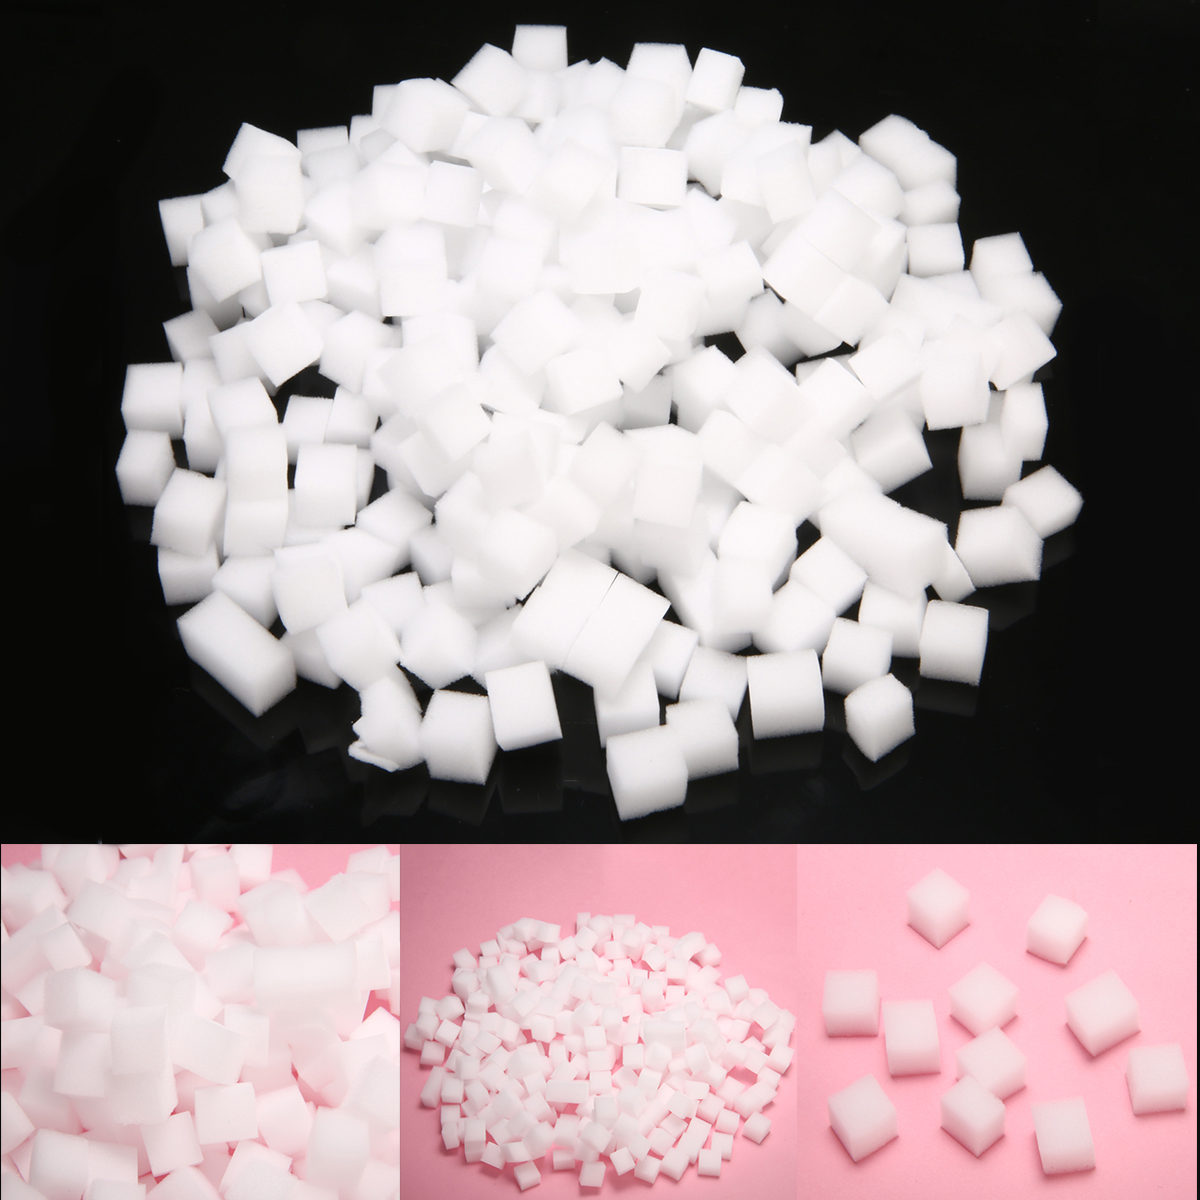 300pcs 10*10mm Simulation Jelly Cubes For DIY Slime / Jelly Cube Clear Slime Relief Clay Girls Crafts Decoration Toy Material